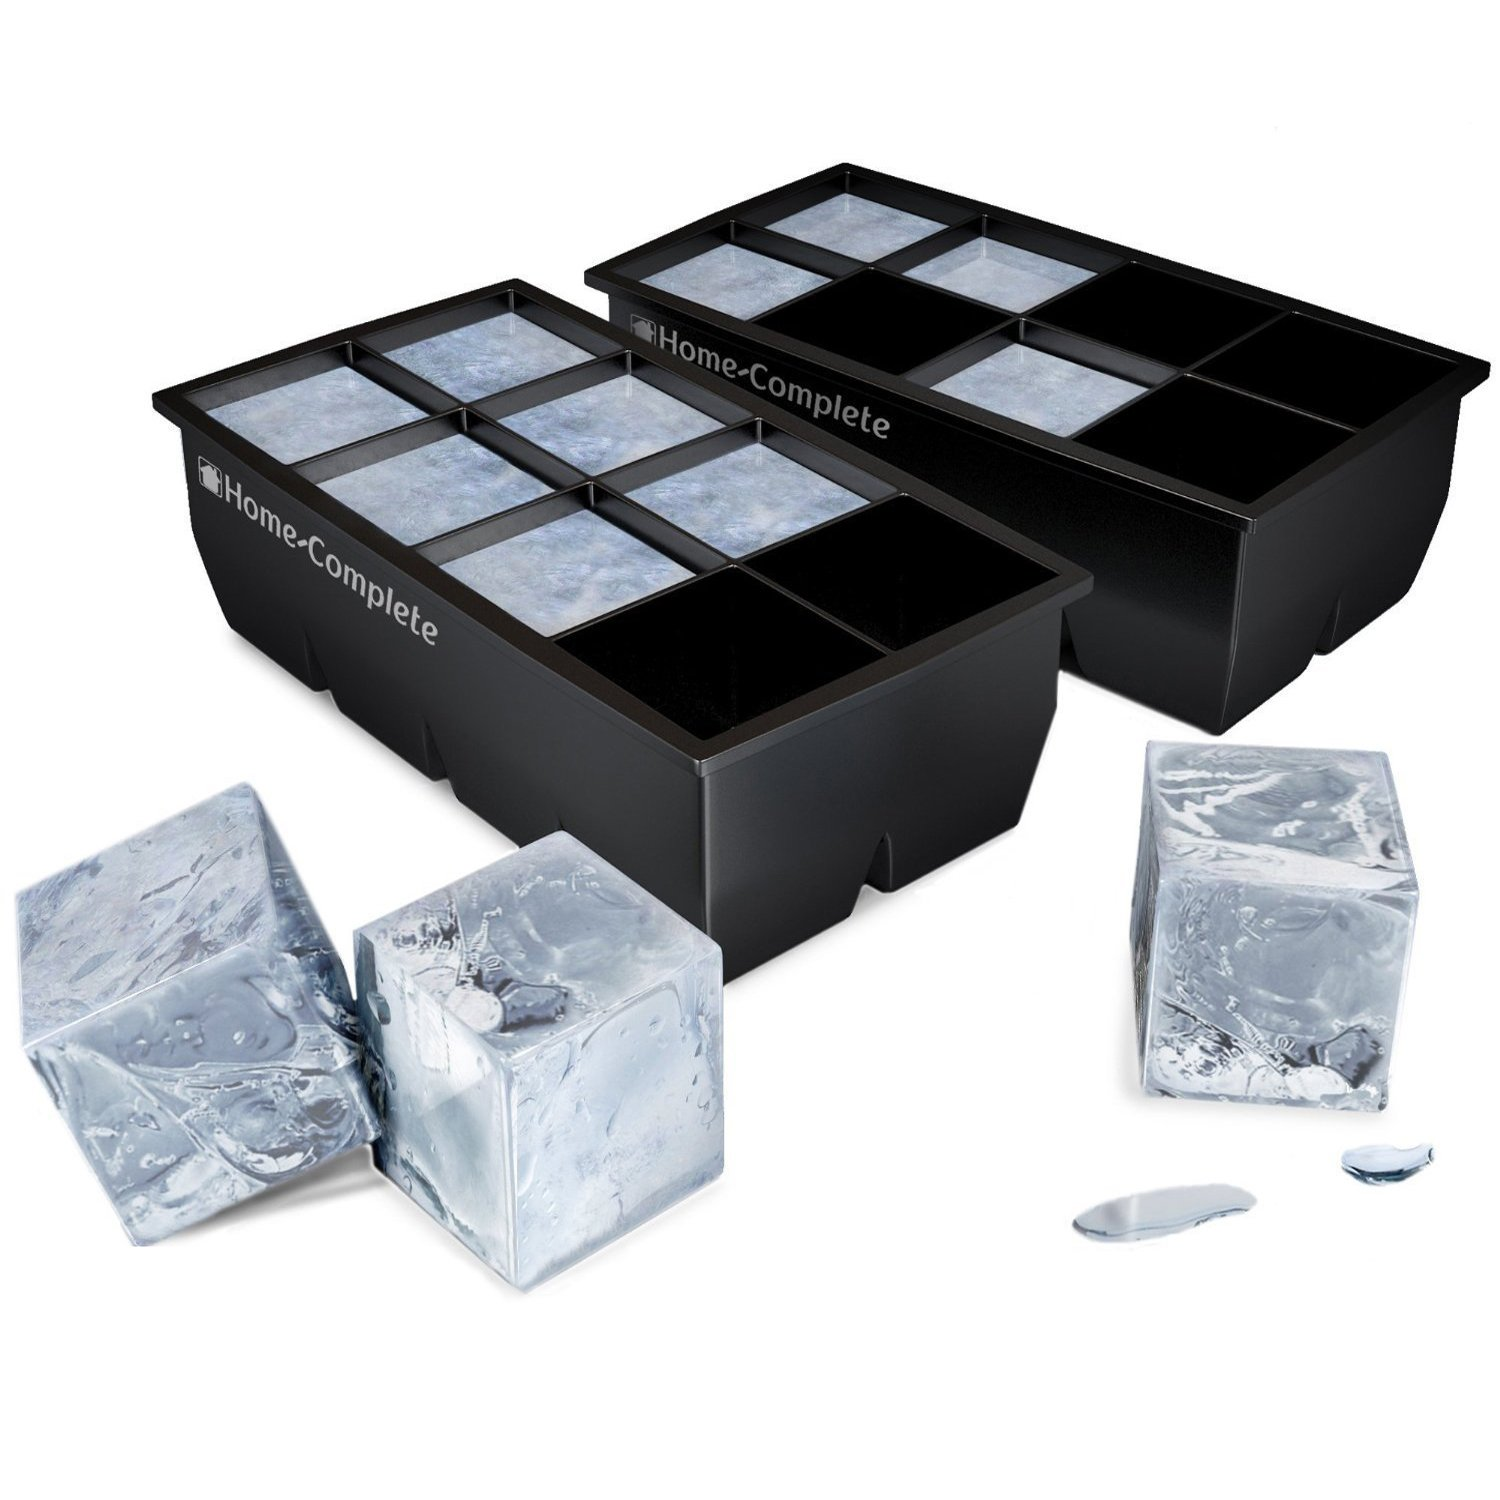 galleon best ice cube trays 2 large silicone pack 16 giant 2 inch ice cubes molds. Black Bedroom Furniture Sets. Home Design Ideas